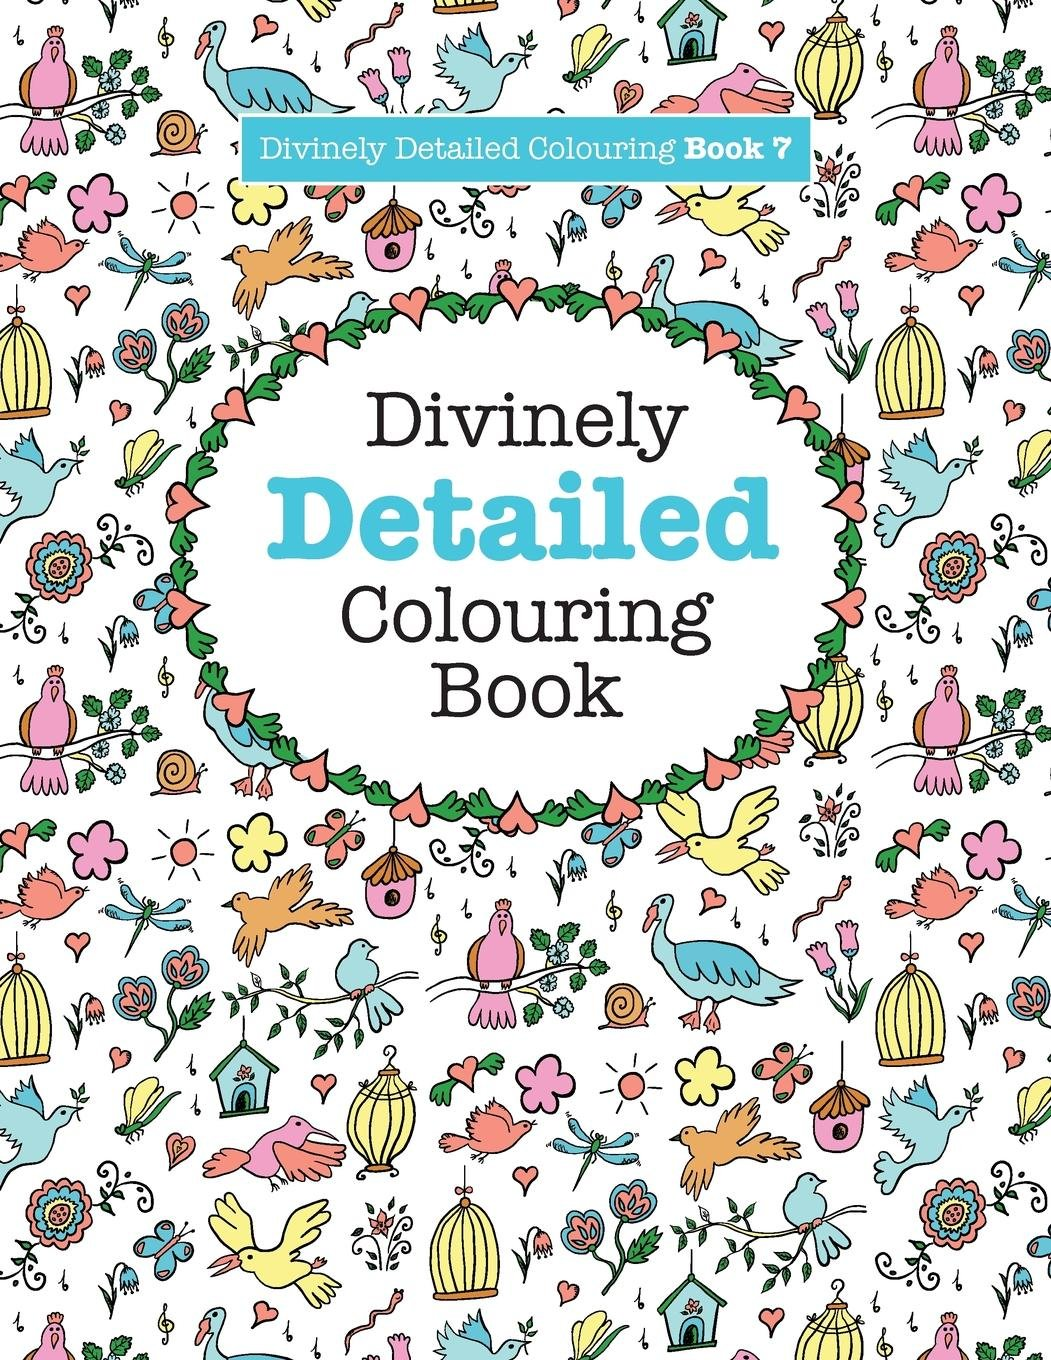 Divinely Detailed Colouring Book 7 (Divinely Detailed Colouring Books) (Volume 7) PDF